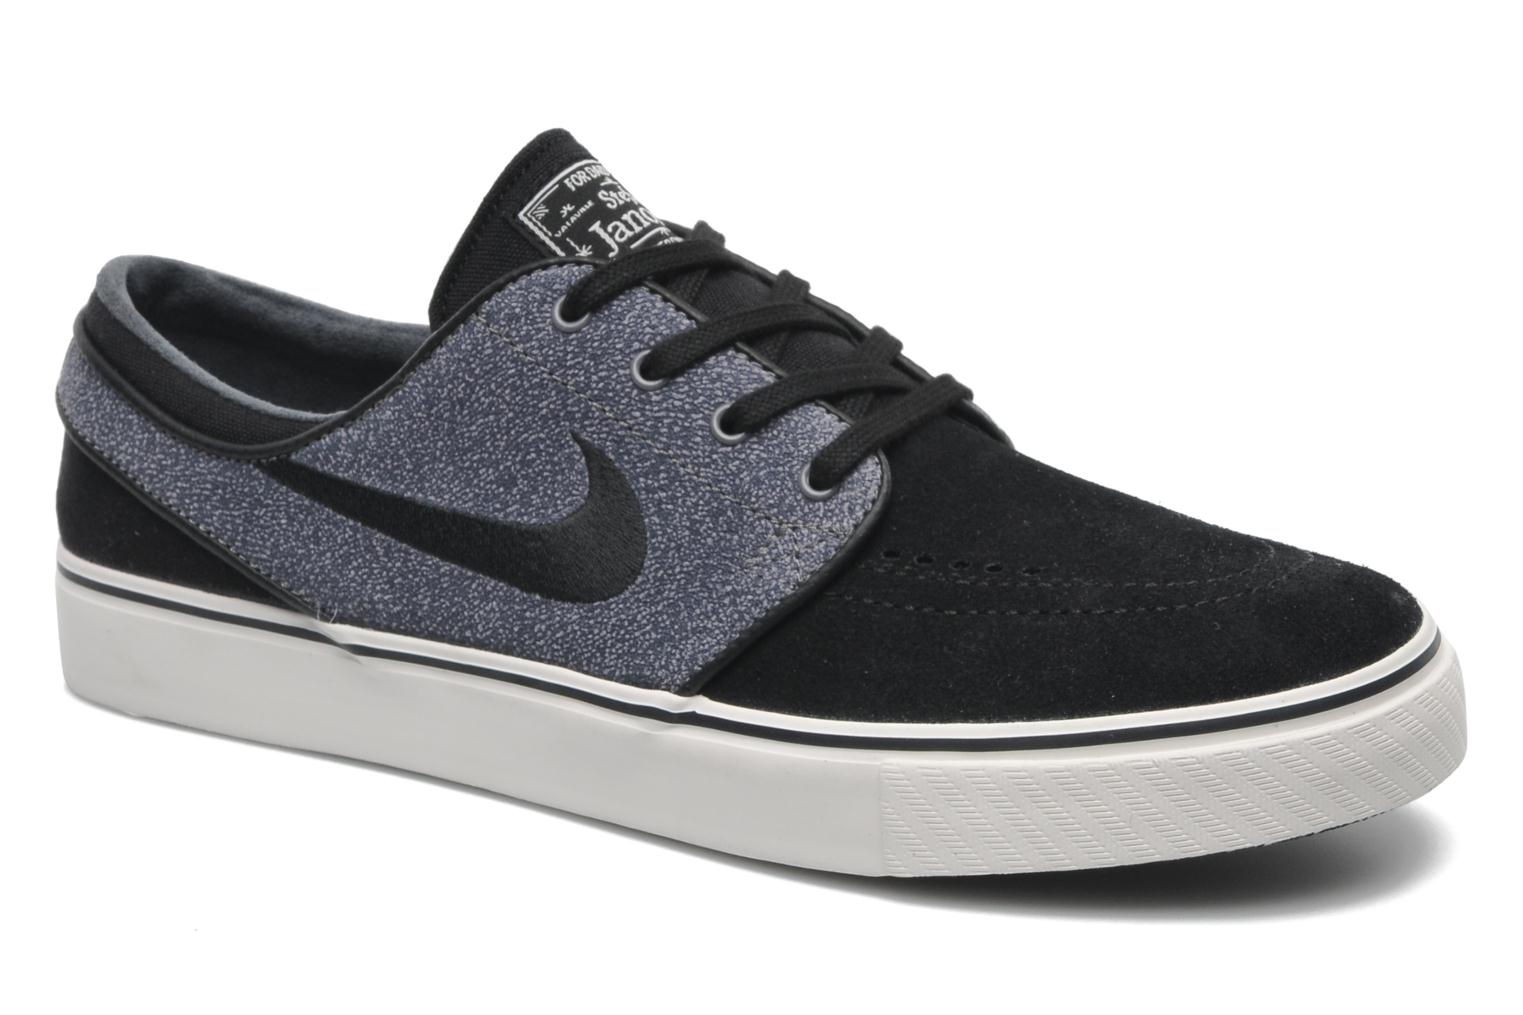 nike nike zoom stefan janoski noir chaussures de sport. Black Bedroom Furniture Sets. Home Design Ideas